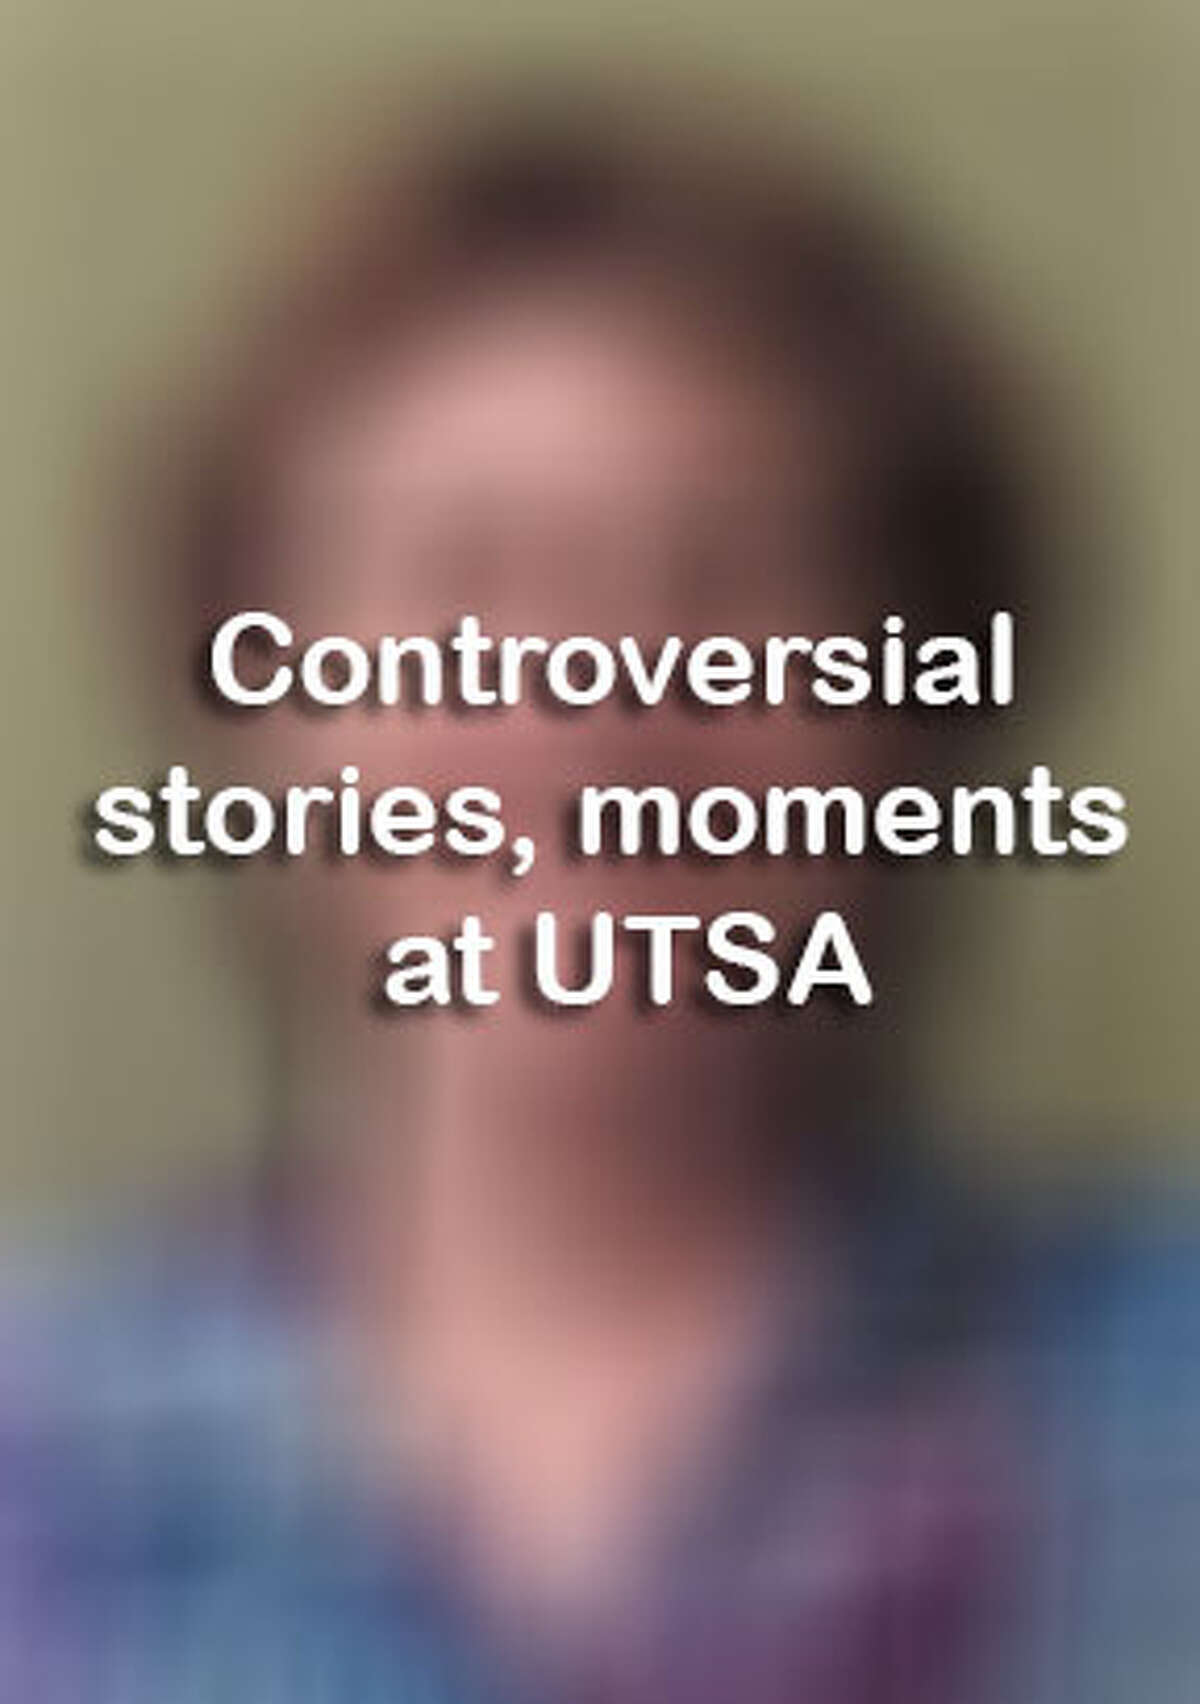 A graphic battle banner, protest and student escort out of class at the University of Texas as San Antonio made headlines this year, but they are the only controversial moments. Click ahead to view other controversies in the news at UTSA.